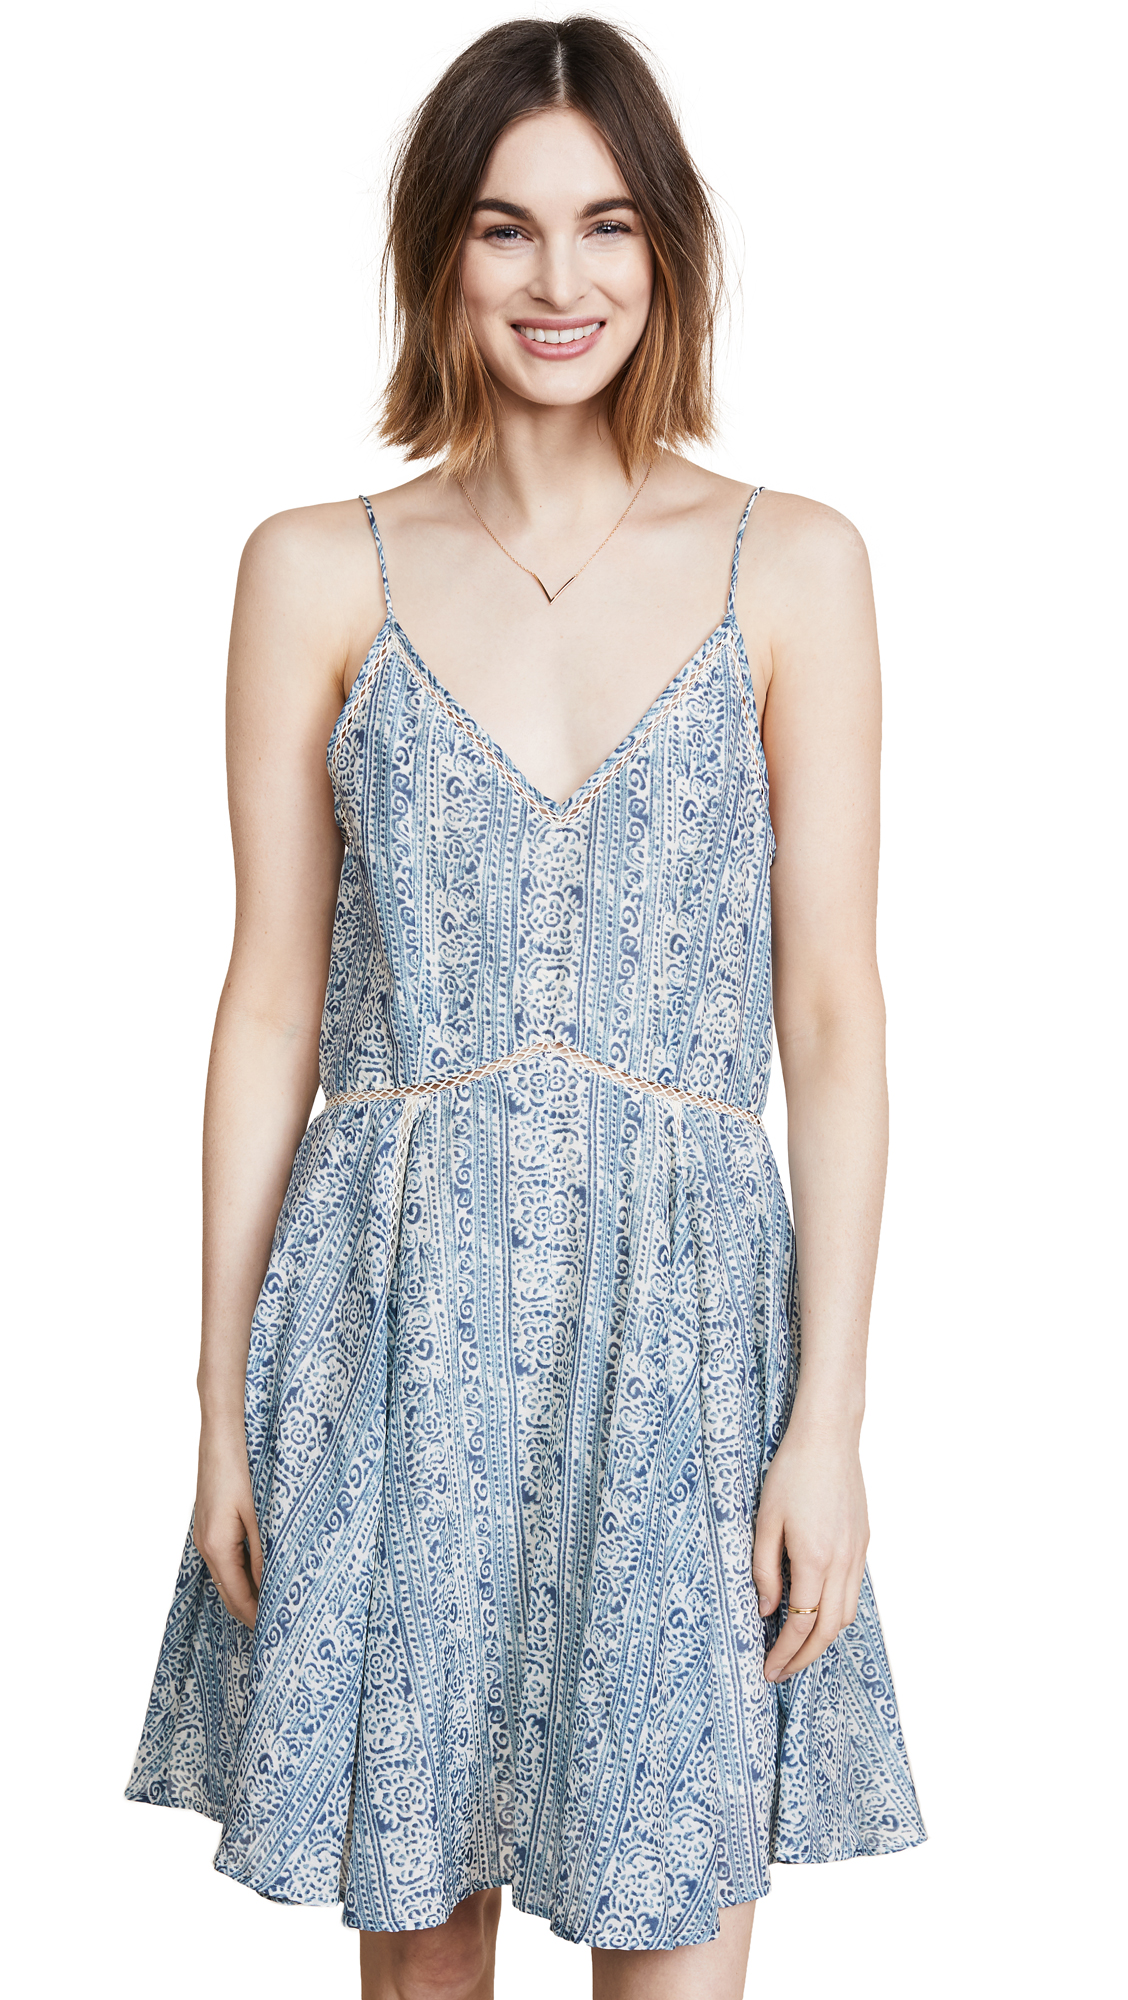 Scotch & Soda/Maison Scotch Cotton Silk Beach Dress In Combo A